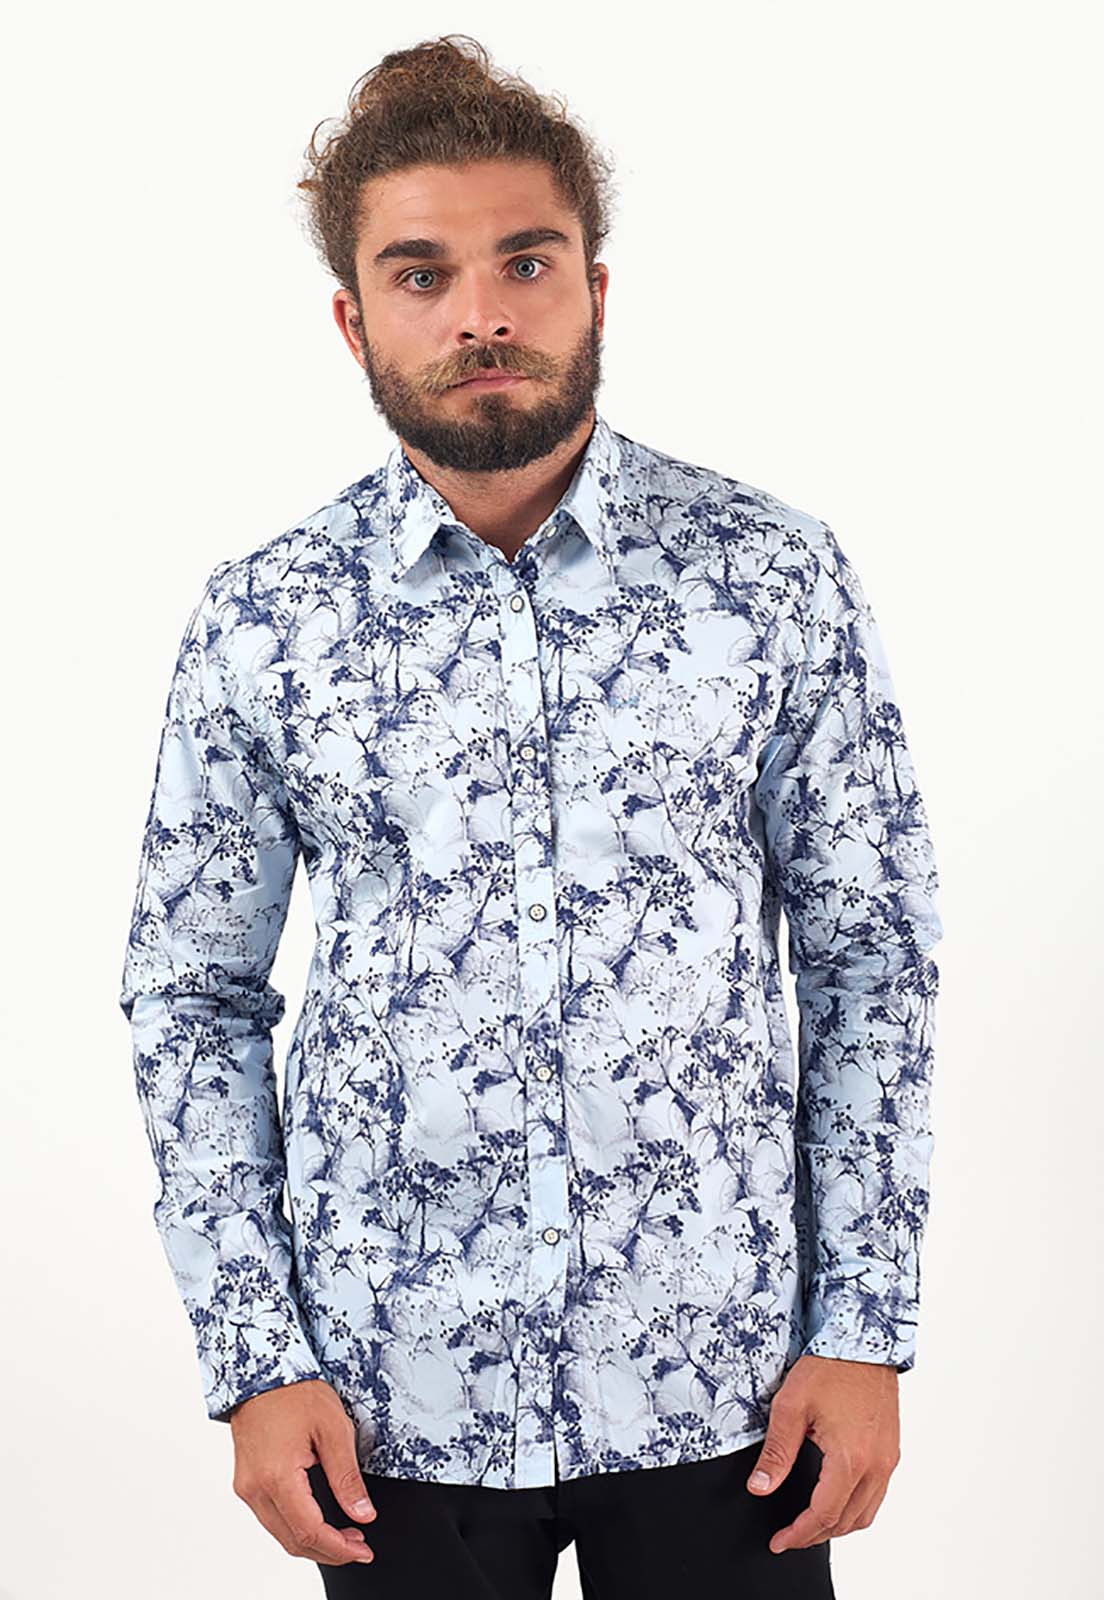 Camisa Jude melty  - melty surf & Co.